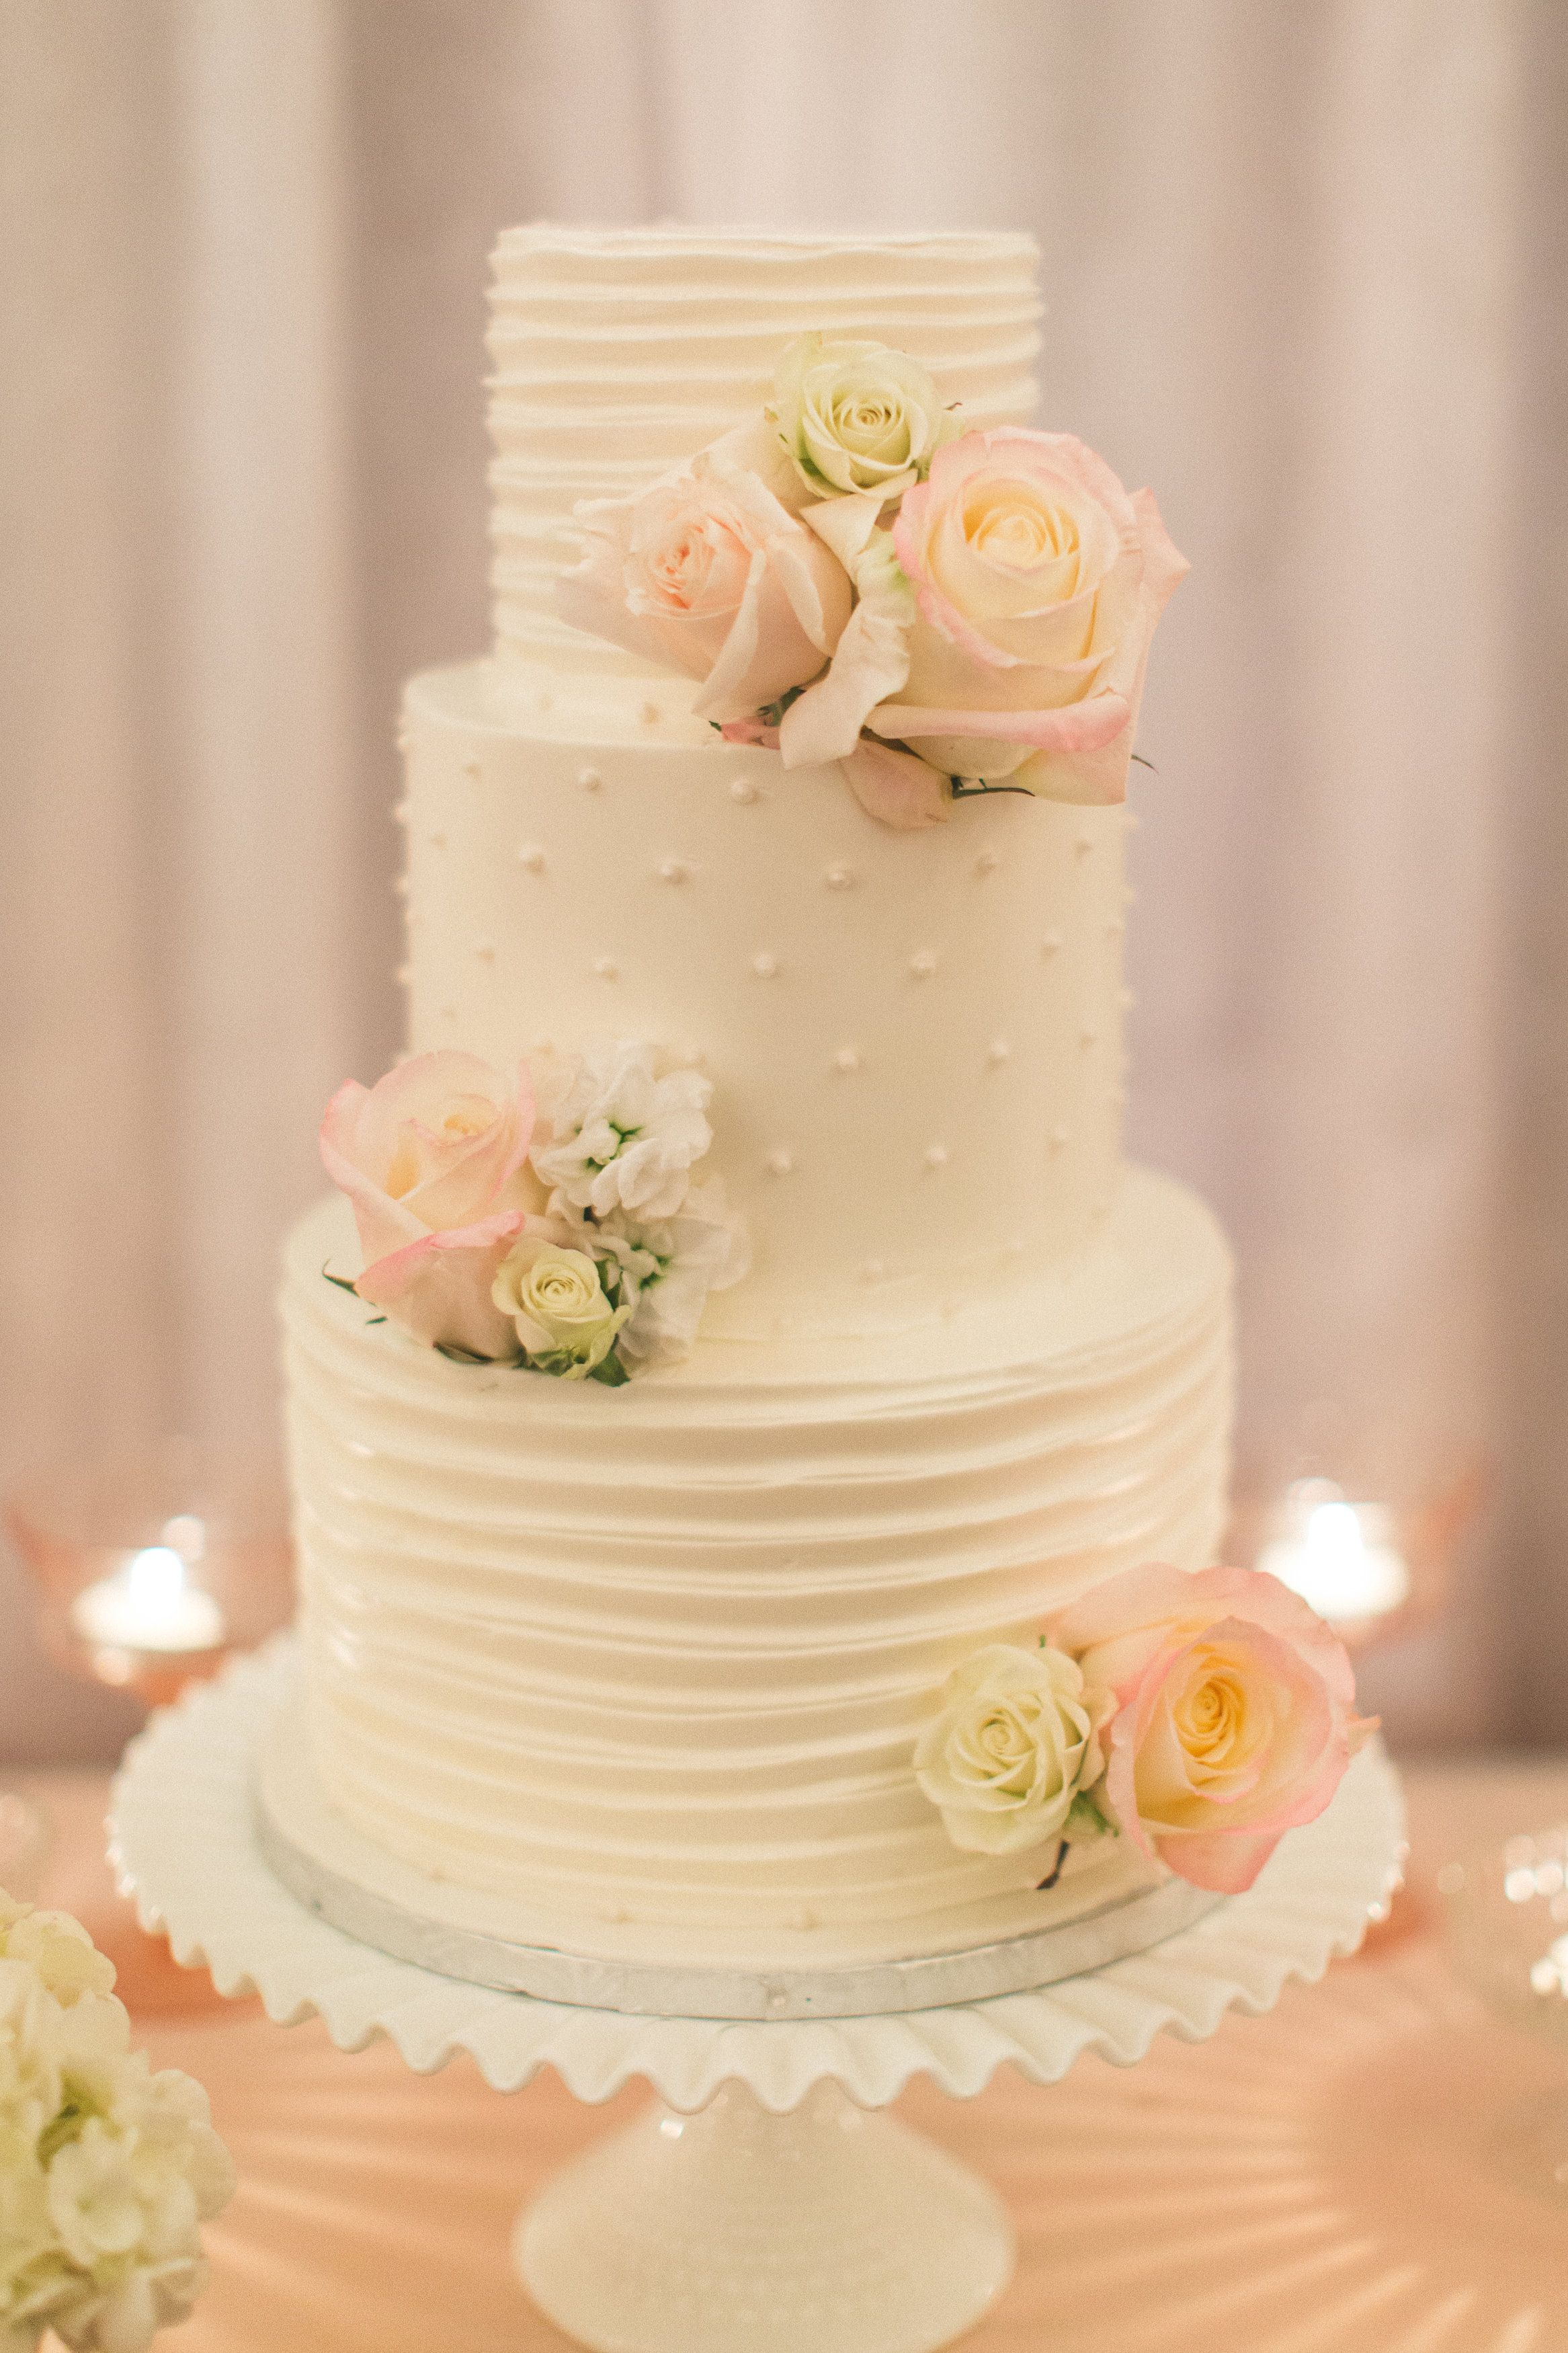 wedding cakes buttercream frosting pictures best 25 wedding cake fresh flowers ideas on 23989